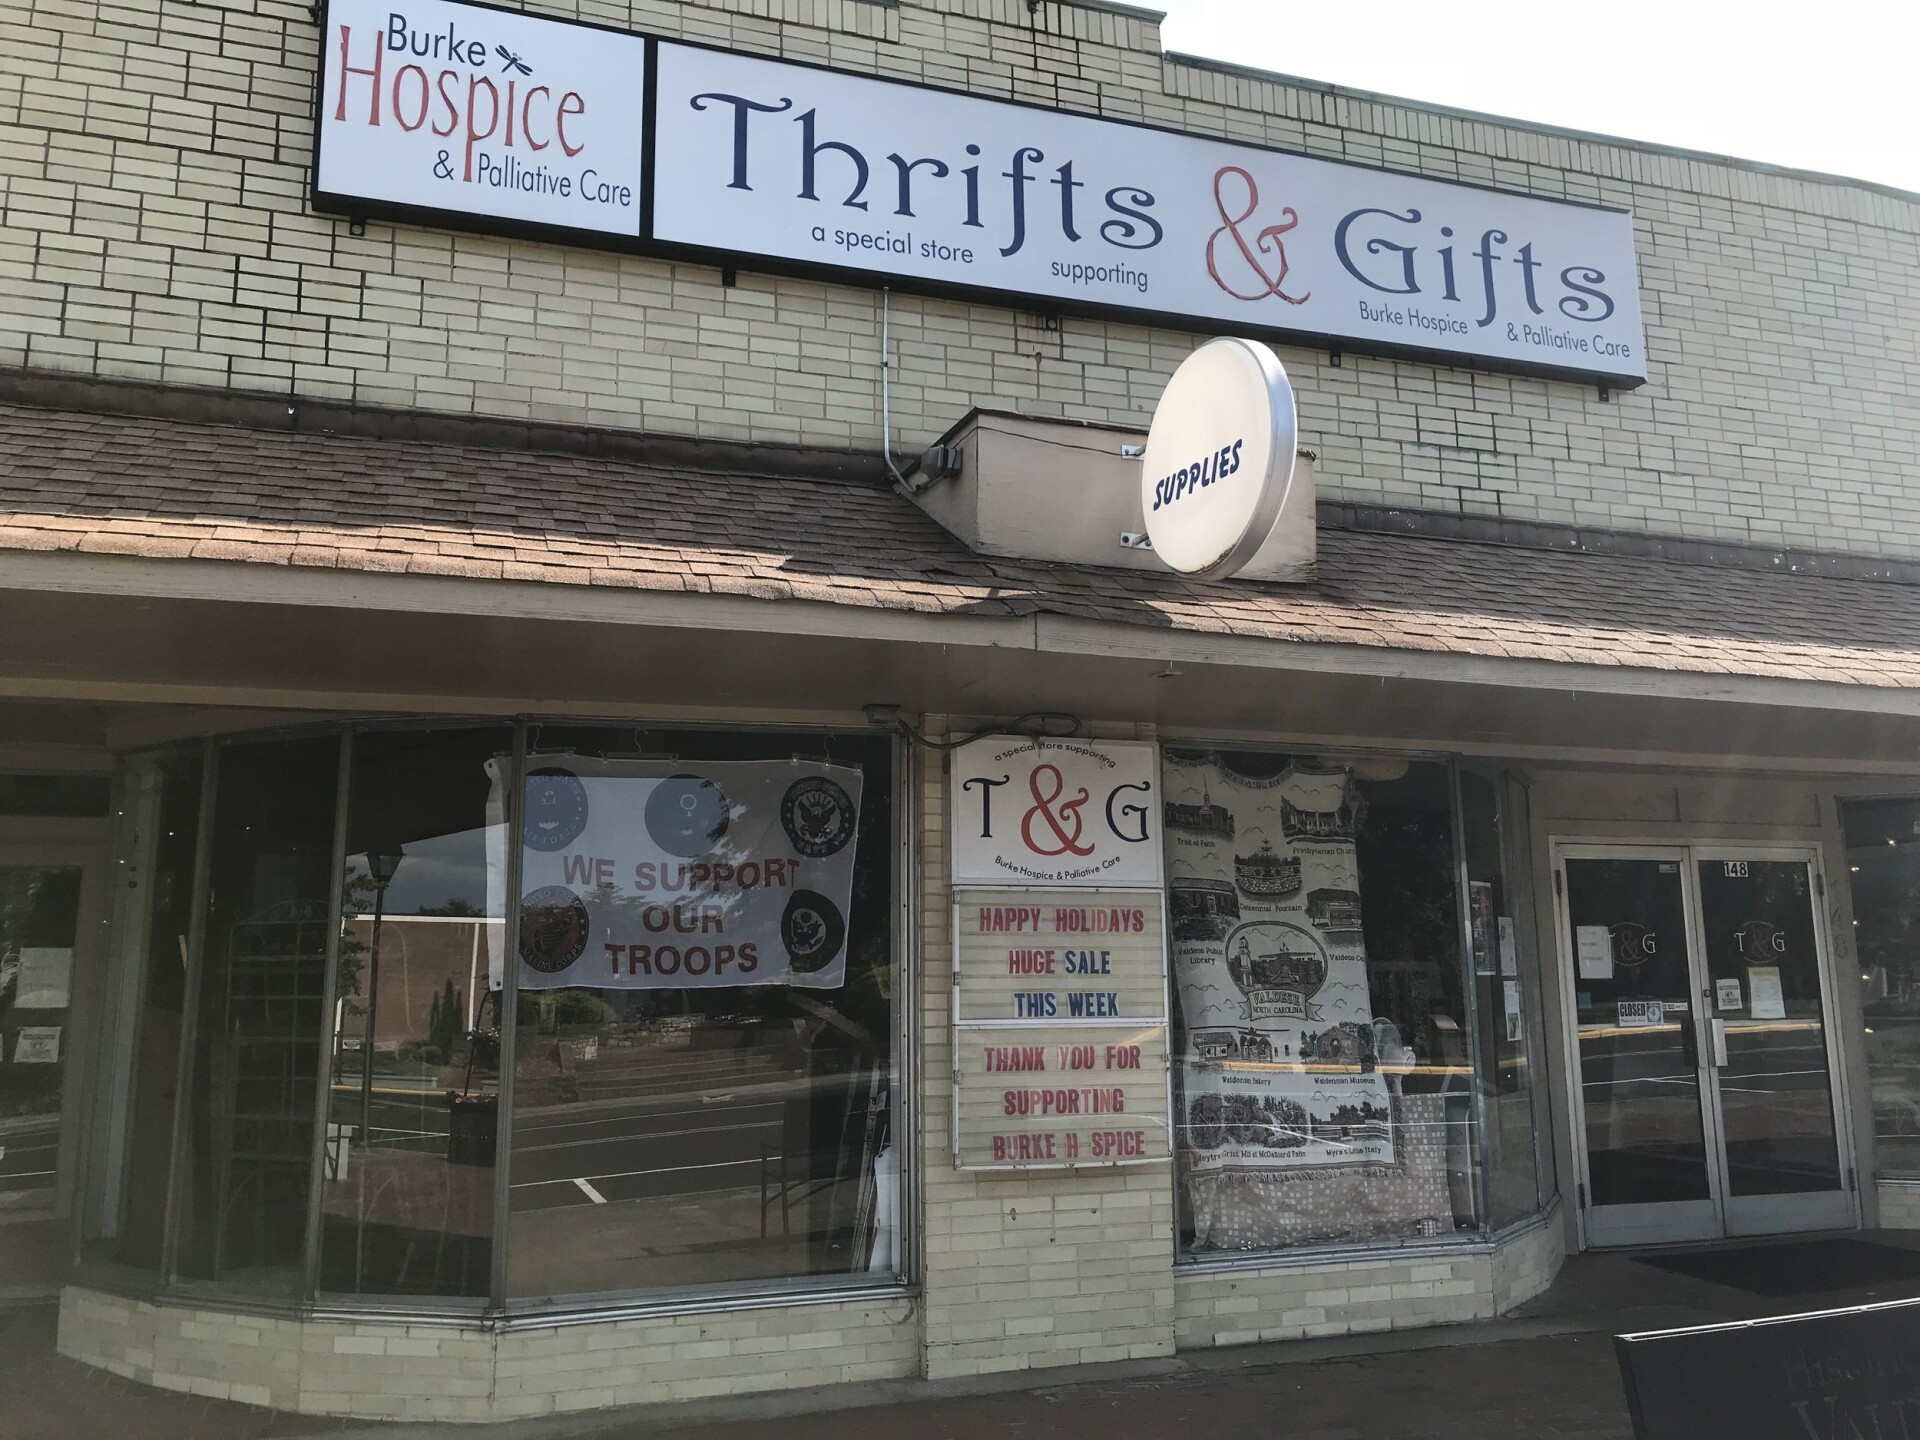 Thrifts and Gifts